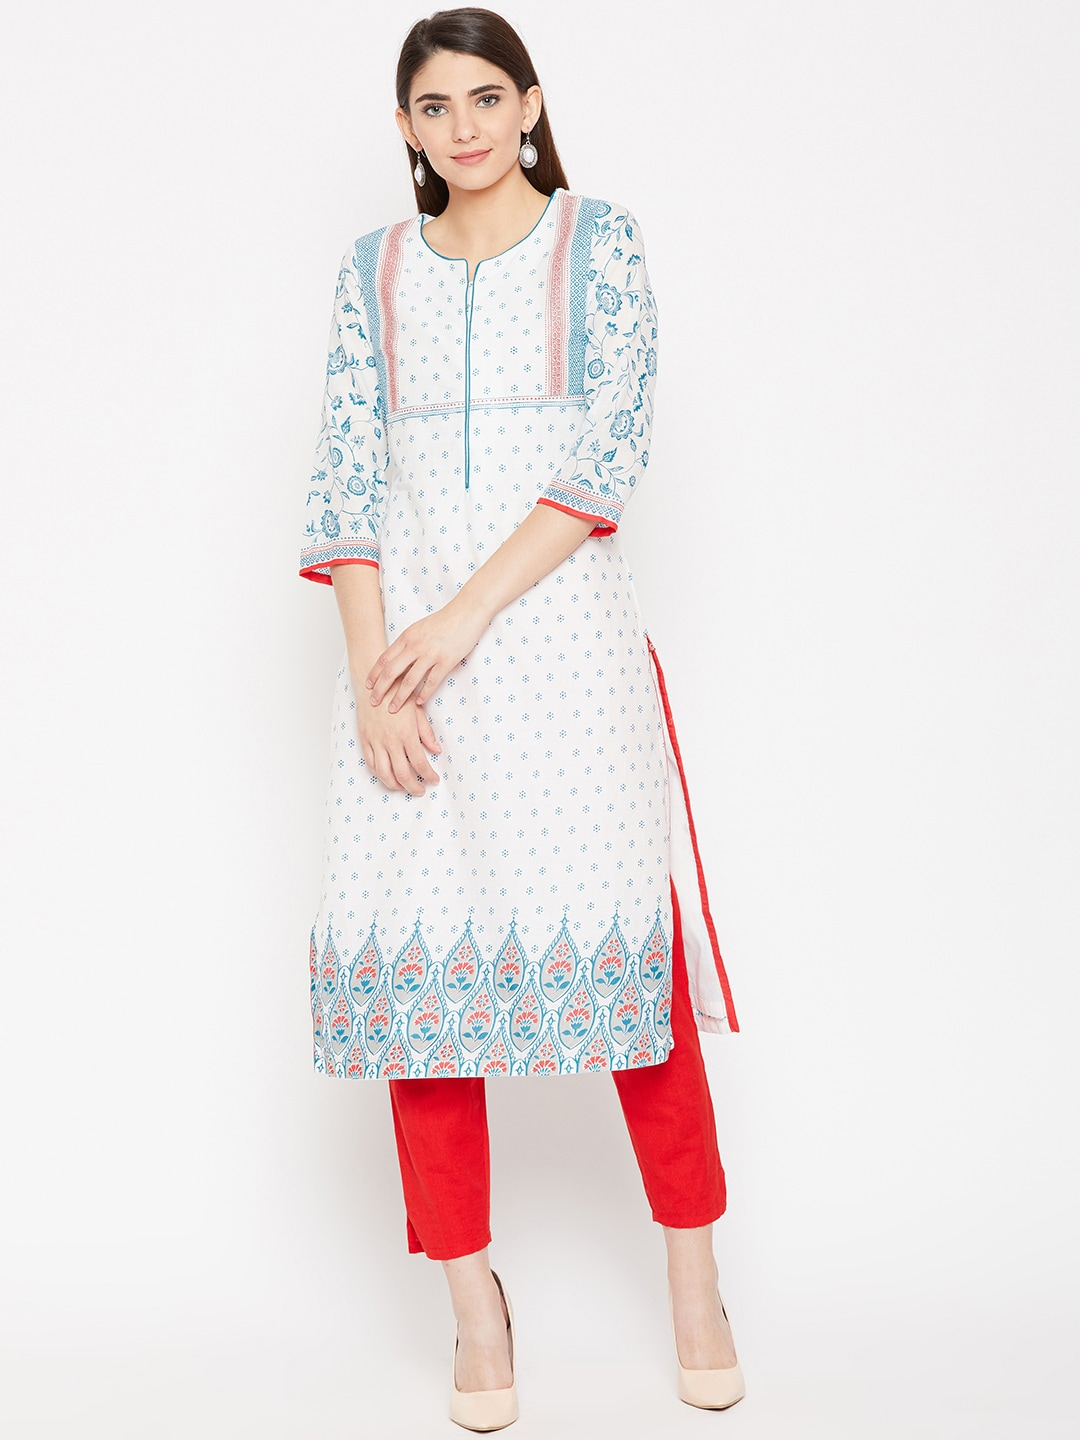 a8cd7545f Kurtis Online - Buy Designer Kurtis   Suits for Women - Myntra